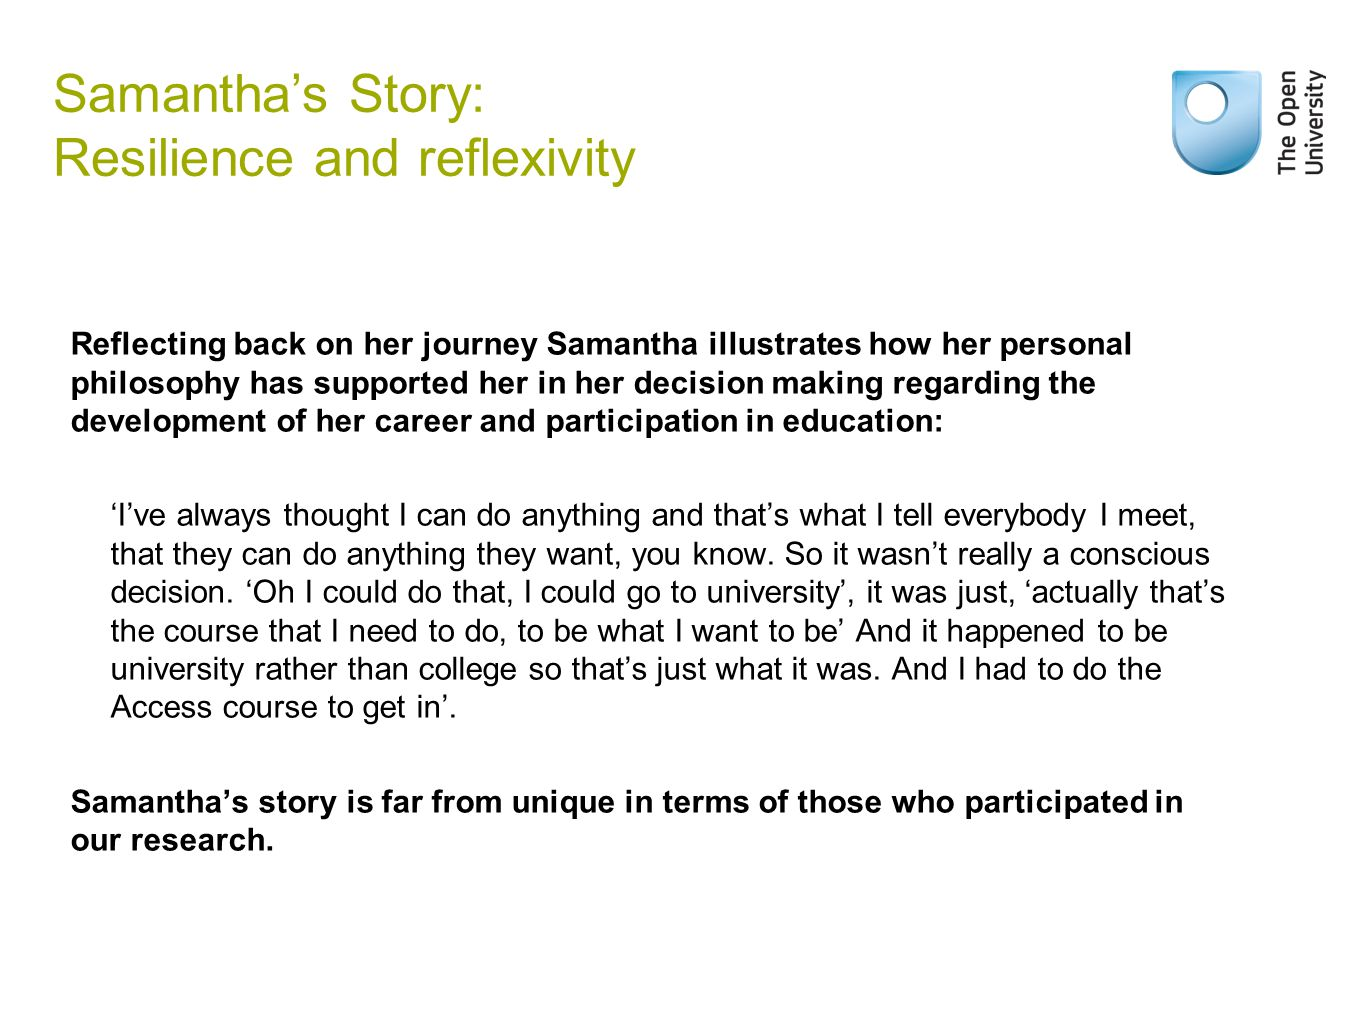 Reflecting back on her journey Samantha illustrates how her personal philosophy has supported her in her decision making regarding the development of her career and participation in education: 'I've always thought I can do anything and that's what I tell everybody I meet, that they can do anything they want, you know.